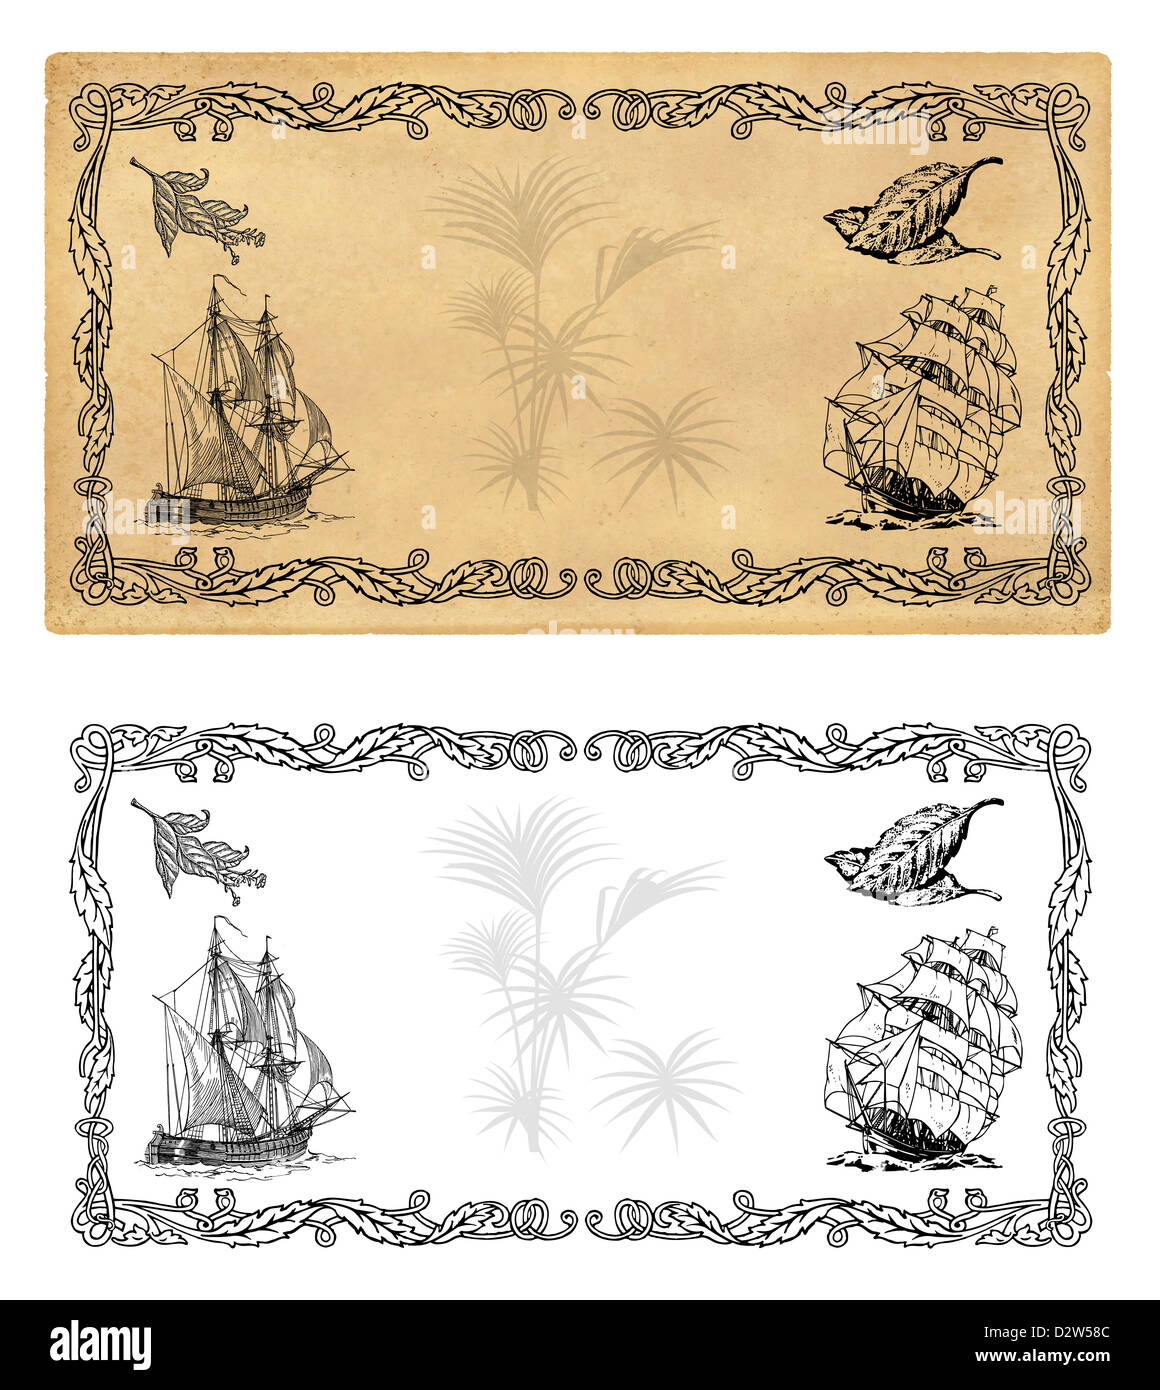 illustration template for spice labels or tea stock photo 53413372